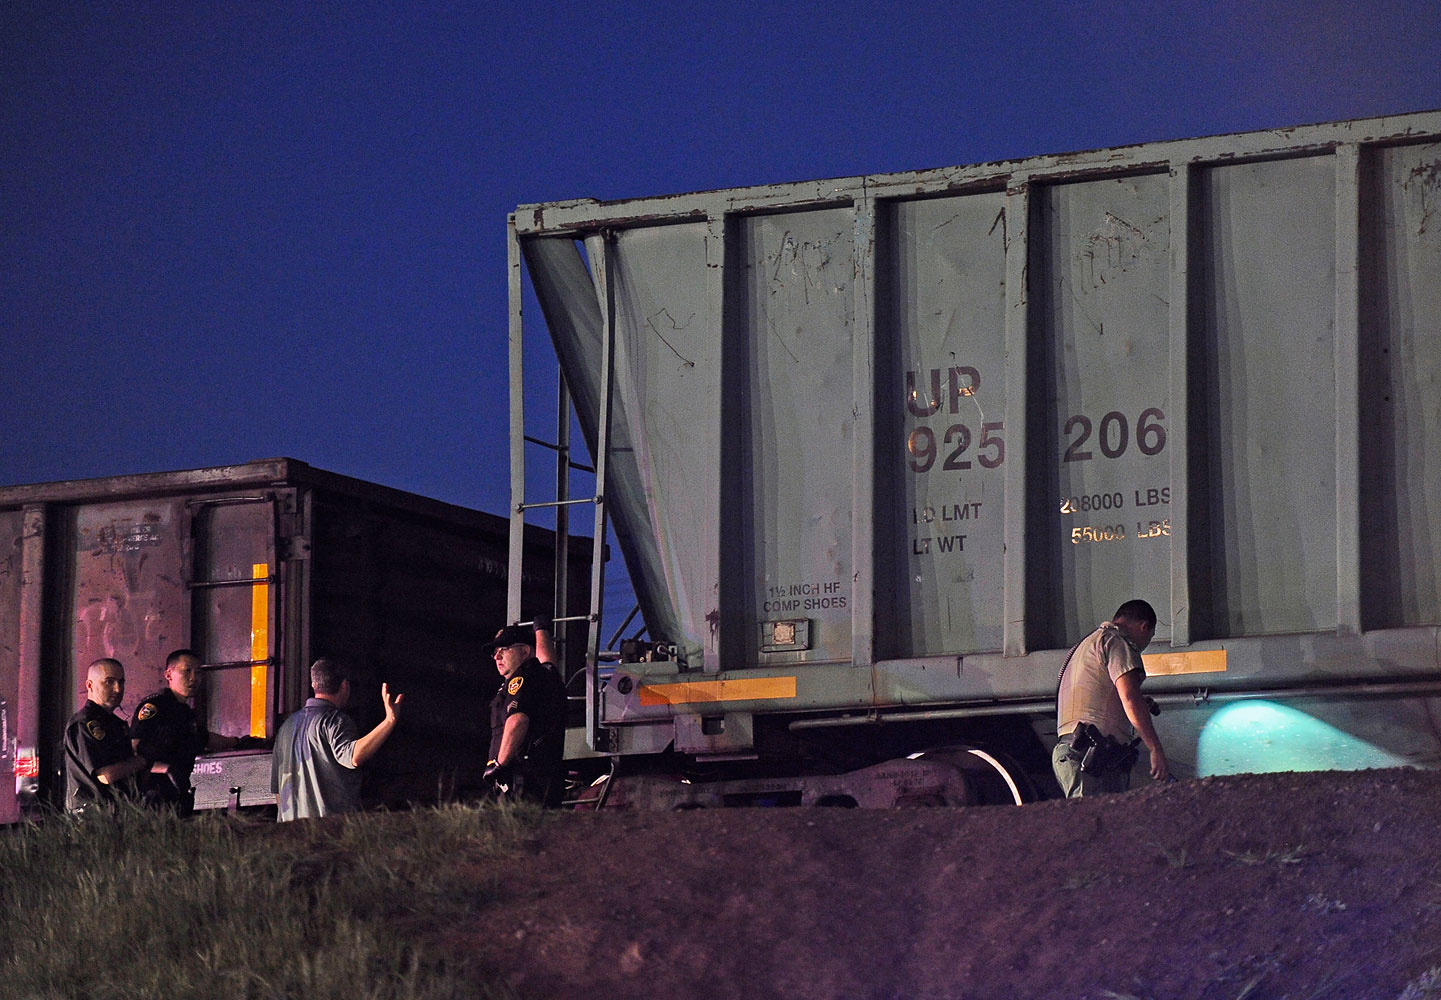 Emergency personnel work at the scene of a train accident near Earl Yorton Field Friday, March 21, 2014 in Marysville.